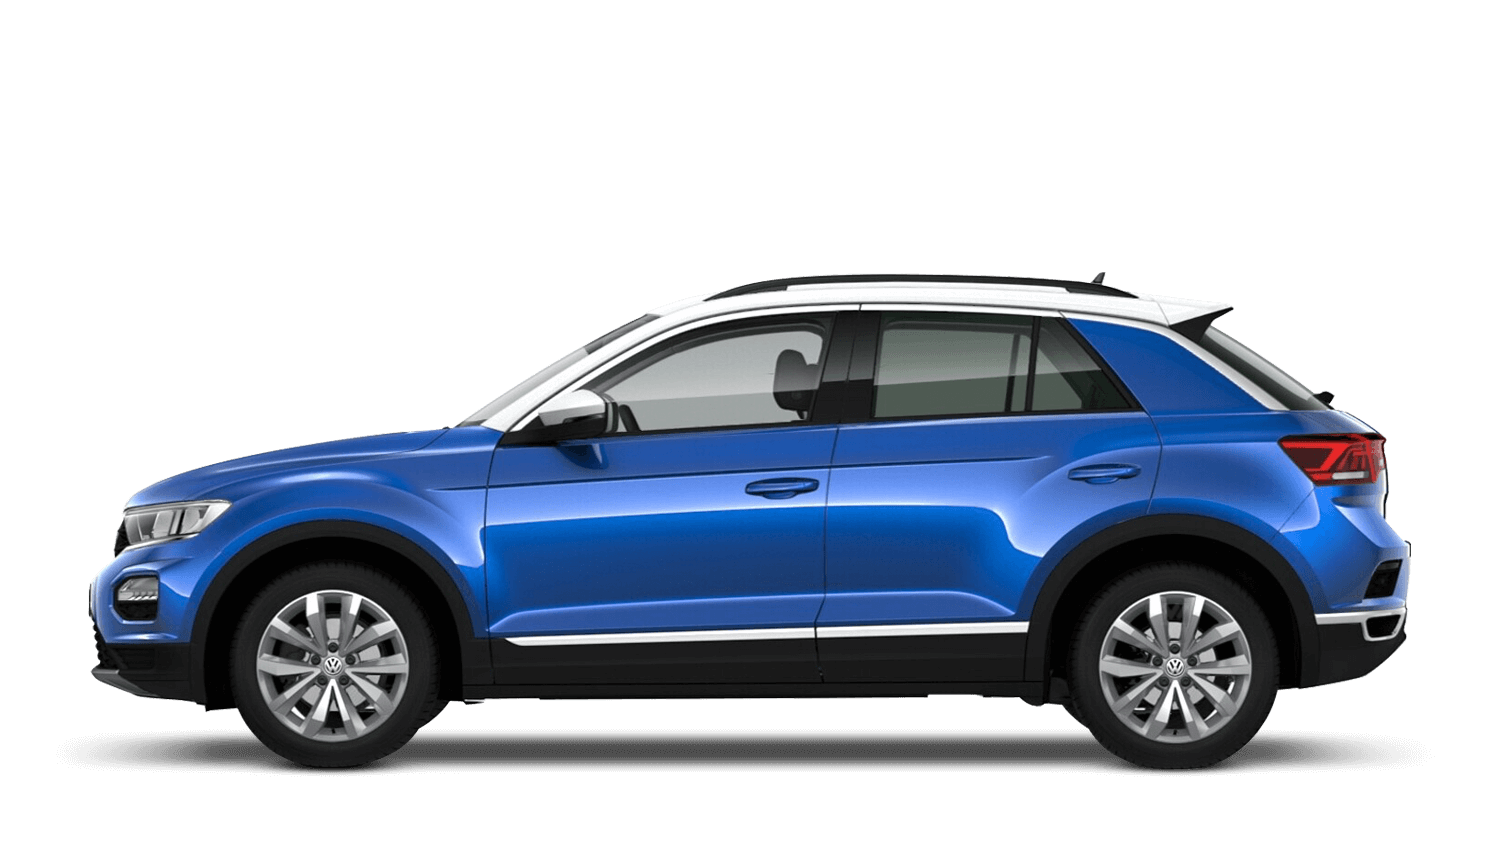 Ravenna Blue with Pure White Roof (Metallic / Pearl) Volkswagen T Roc